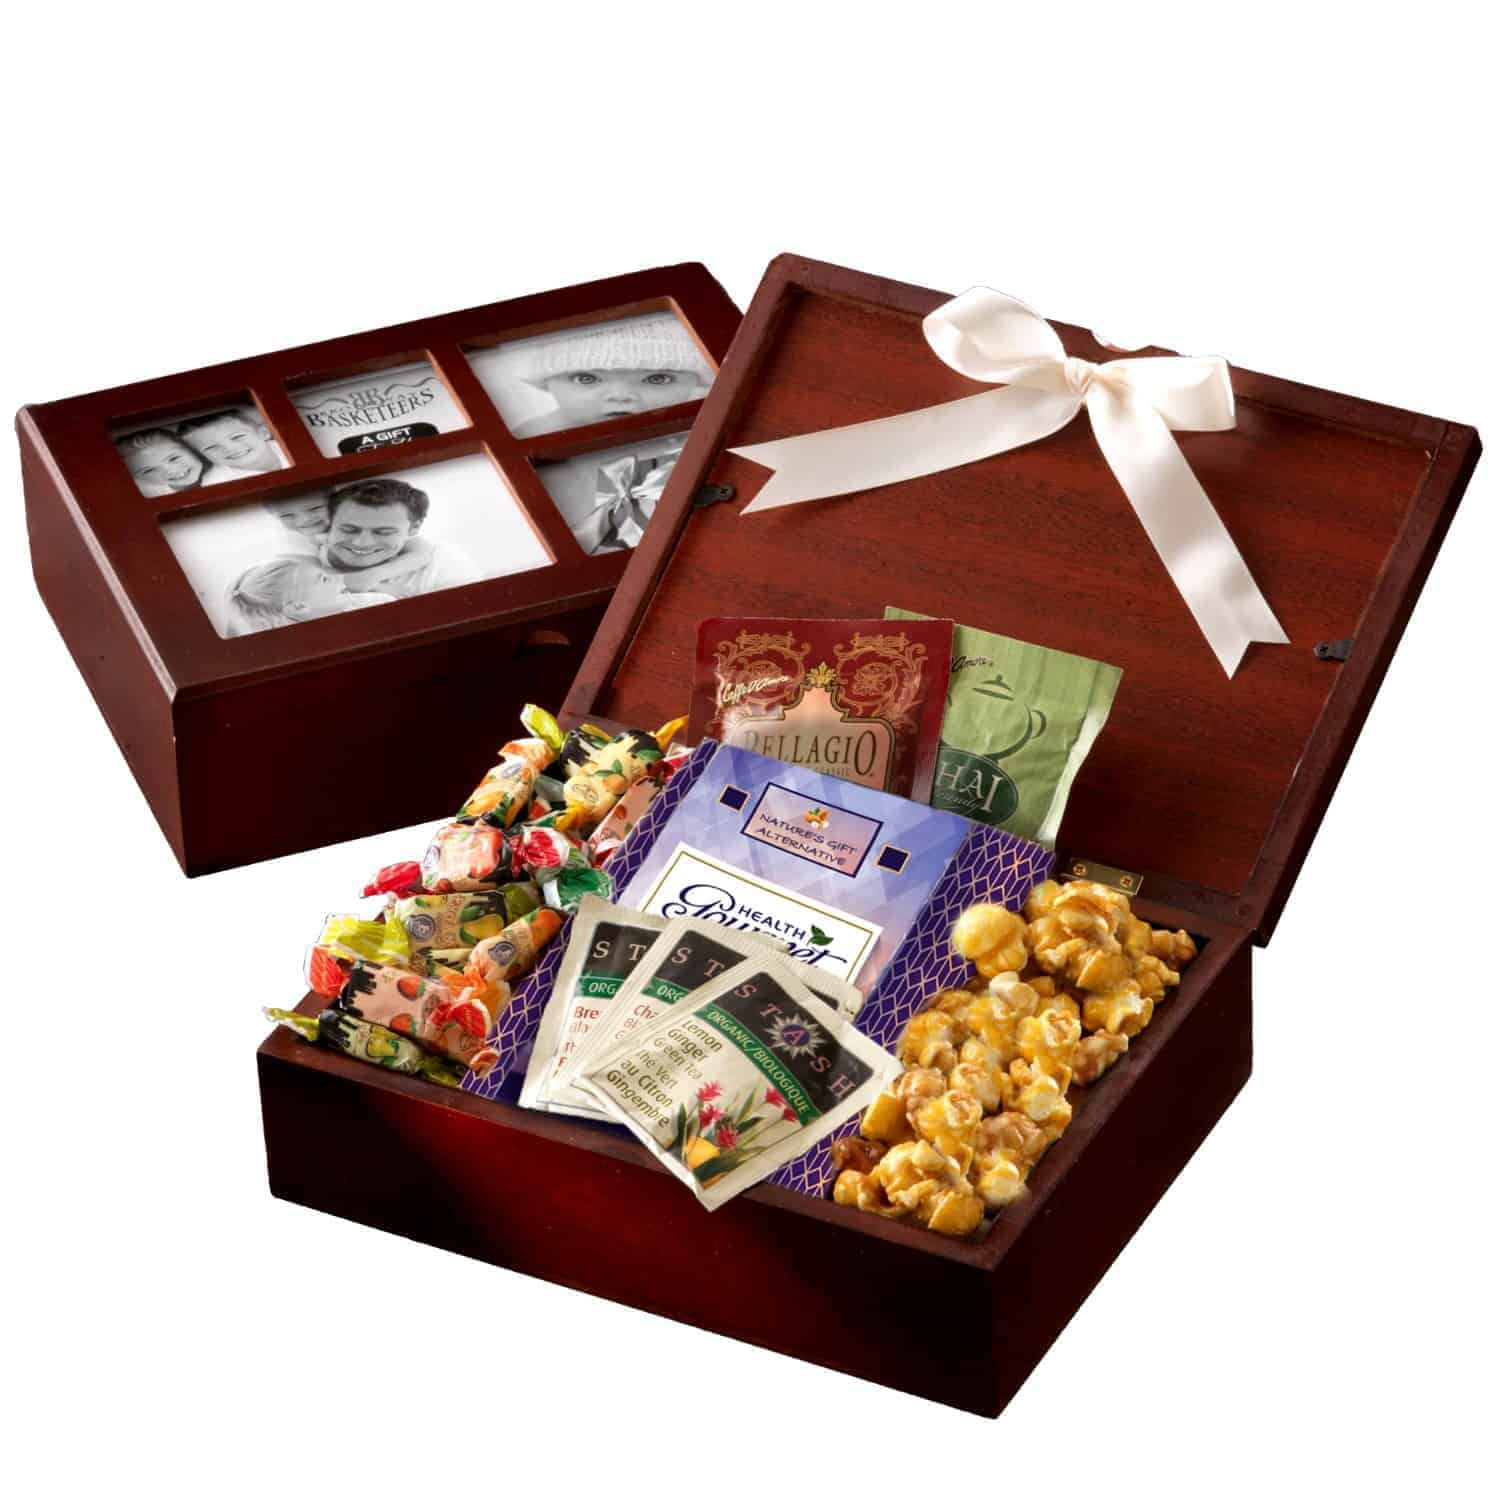 Pure Bribery Holiday Photo Gift Box